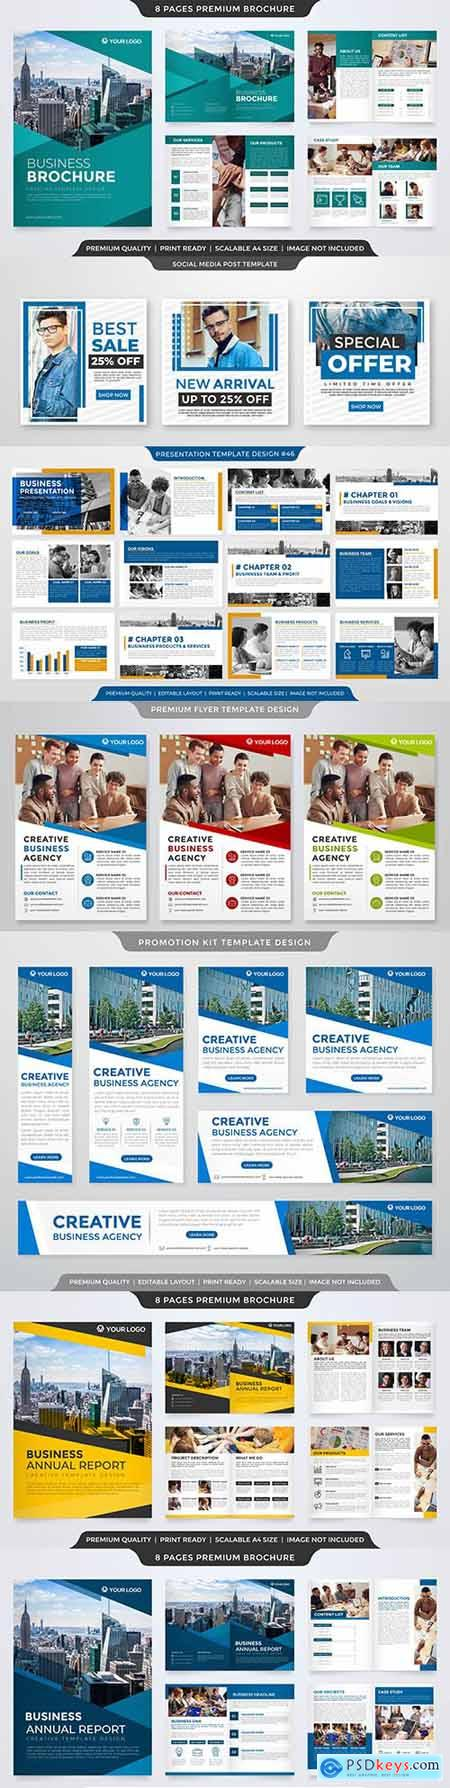 Minimalist business presentation layout template